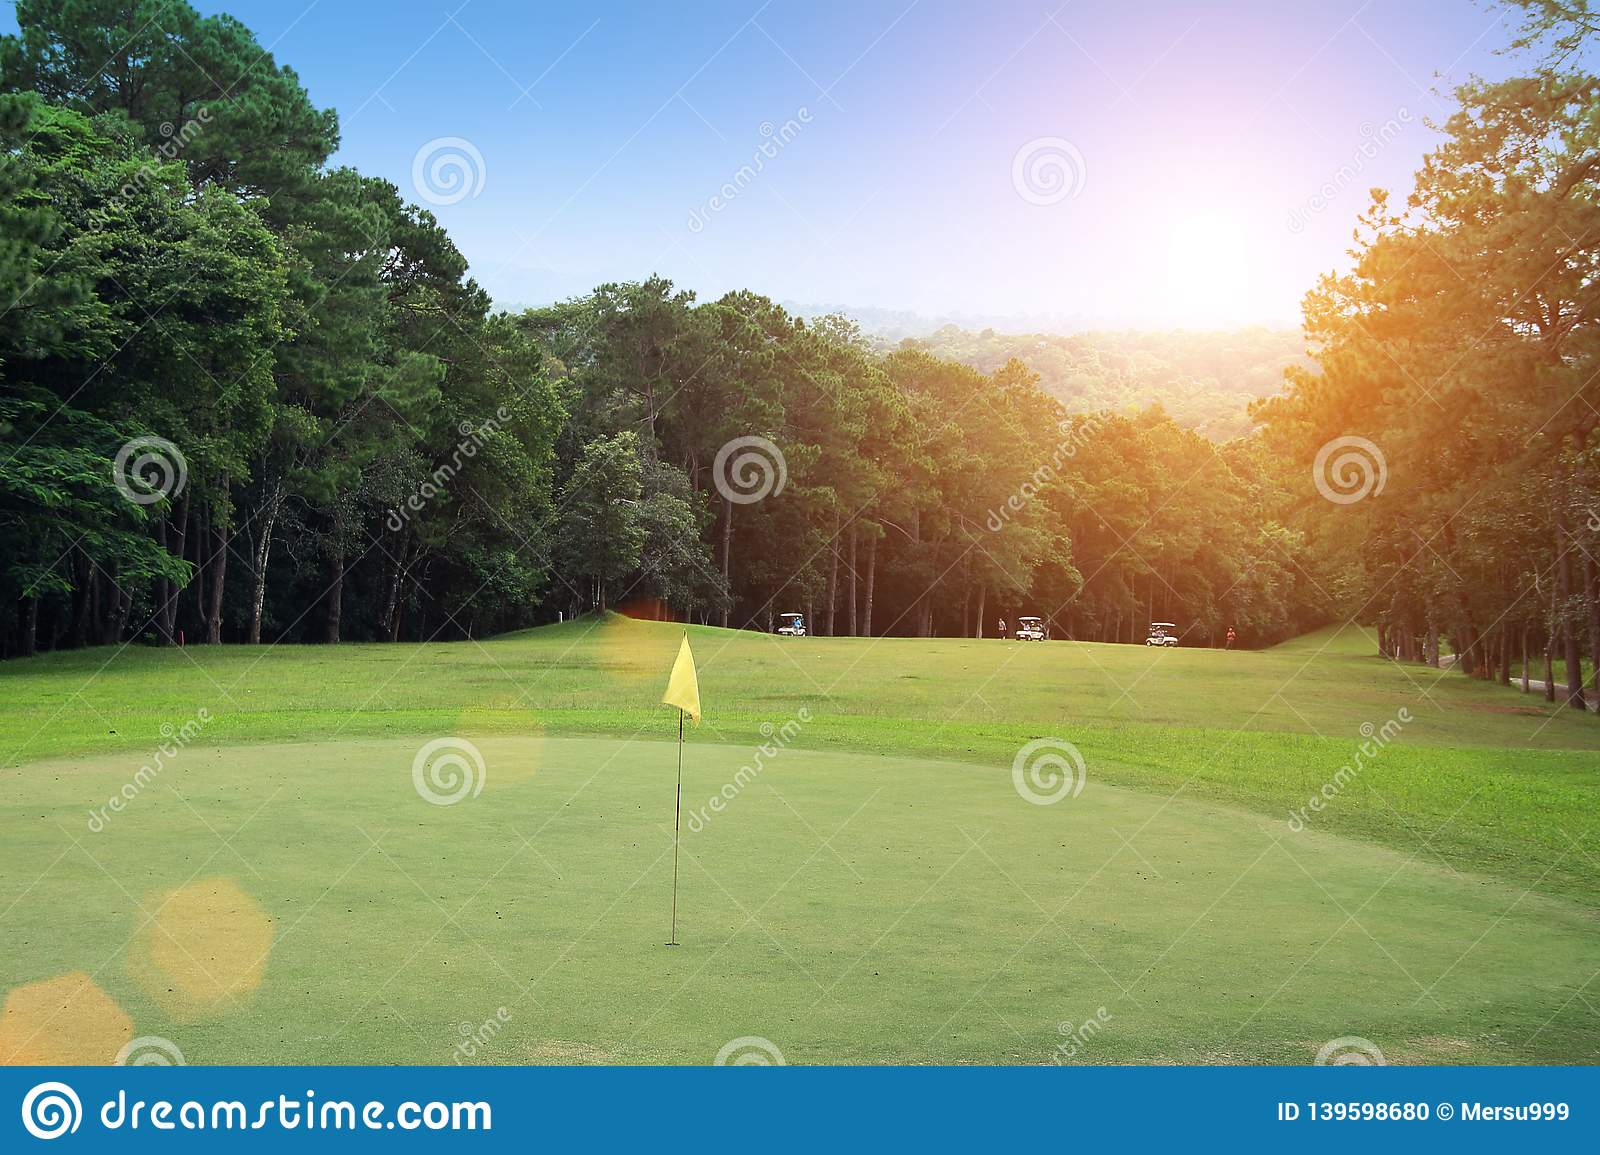 Blurred golf ball on tee in beautiful golf course with sunset.